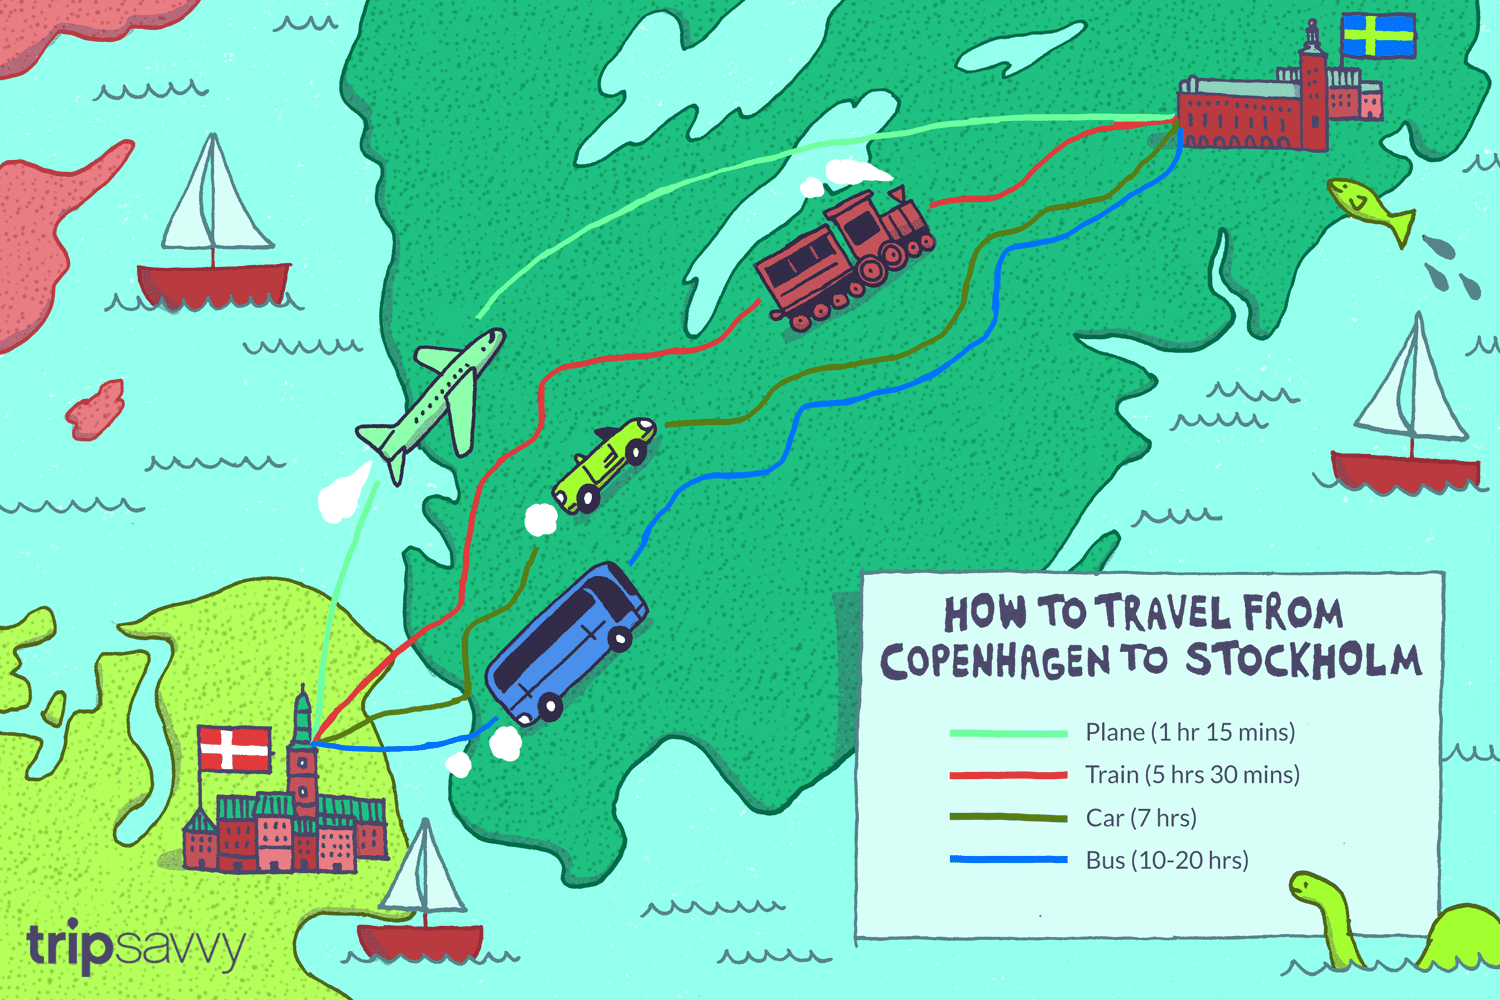 How to Travel From Copenhagen to Stockholm